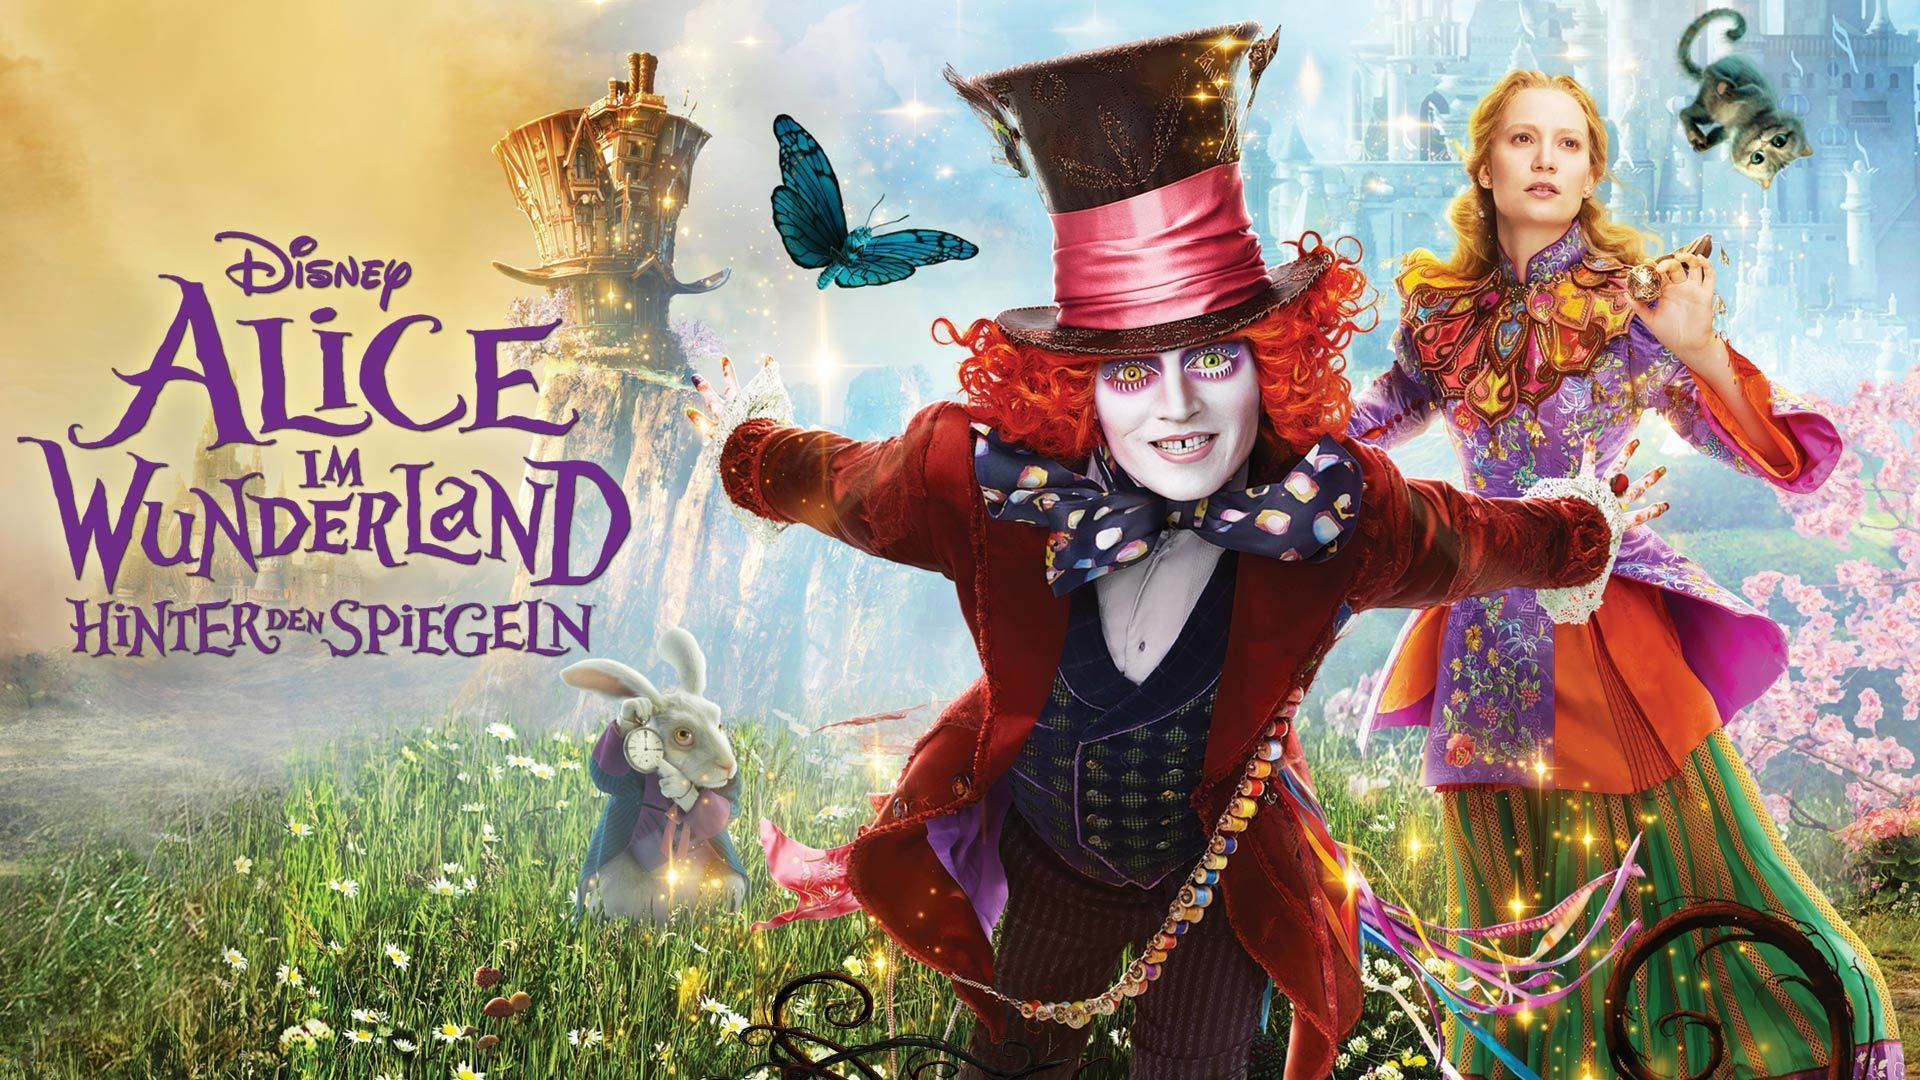 Alice Through the Looking Glass - Poster Flex Hero